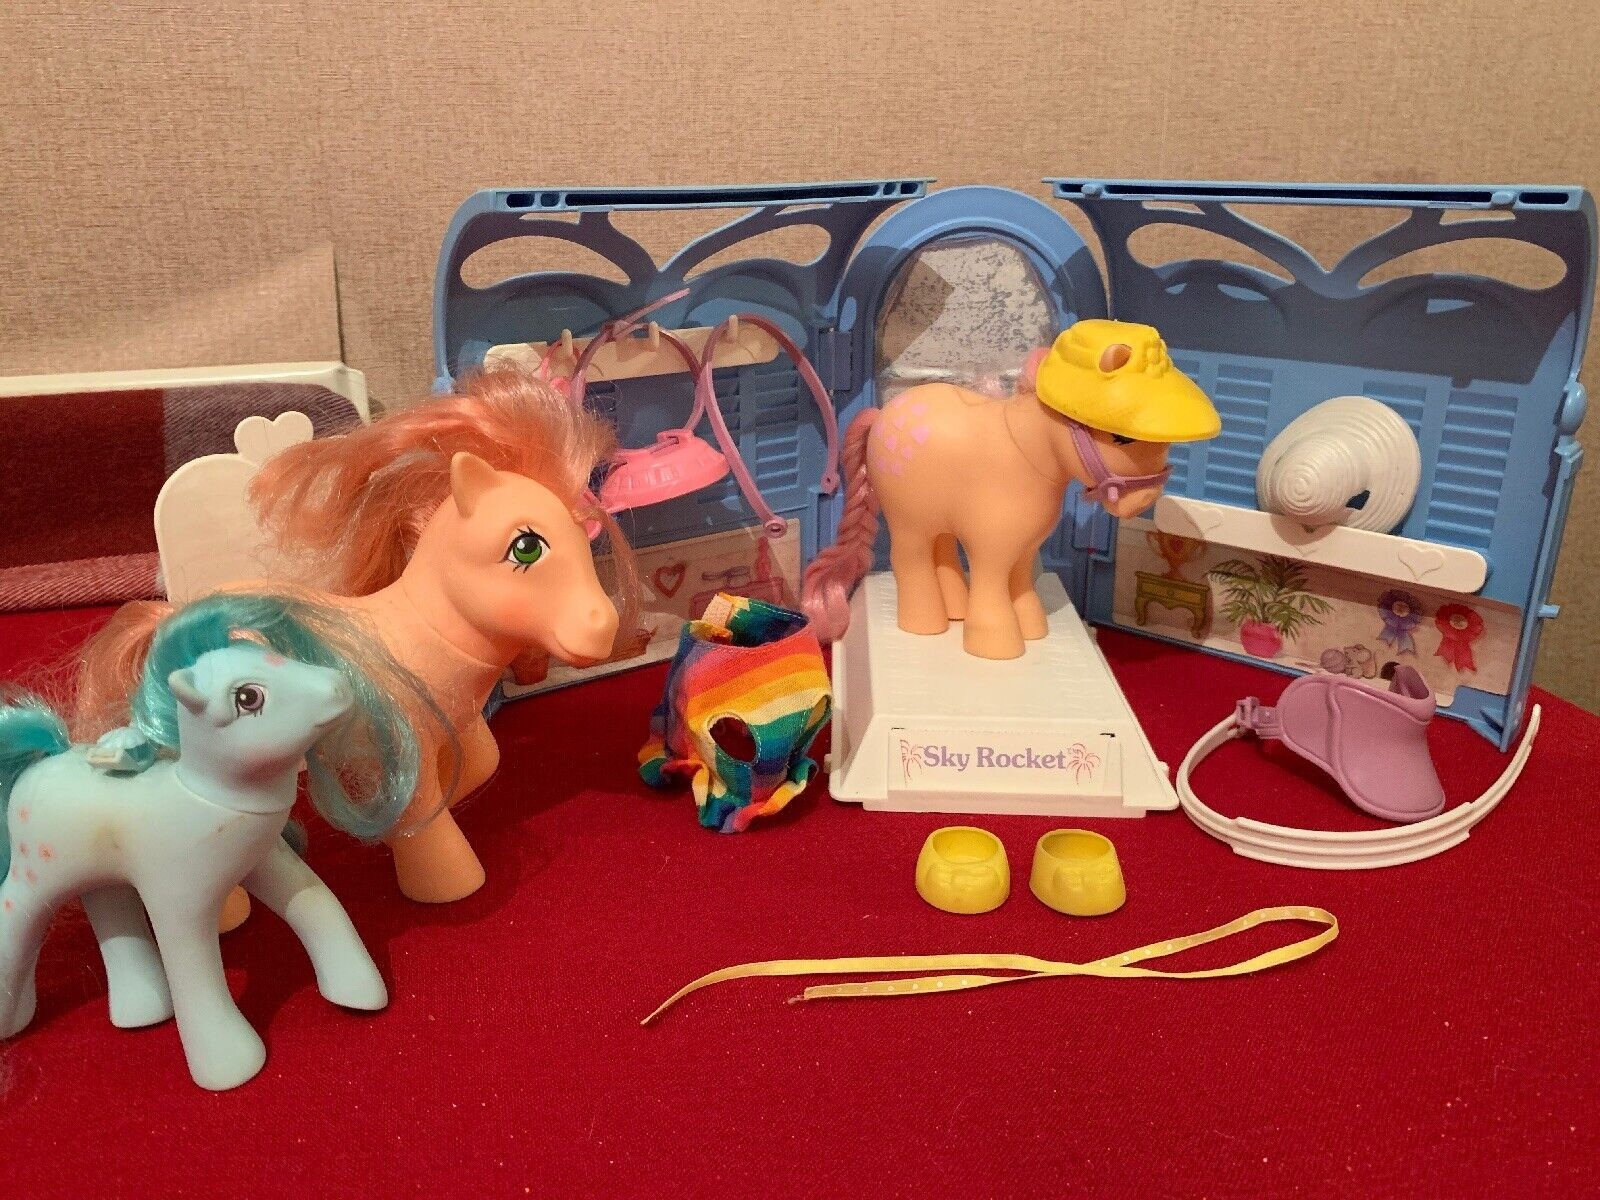 My Little Pony Vintage G1 1983 Pretty Parlour Set Peachy Peachy Peachy - Accessories + Others f50989